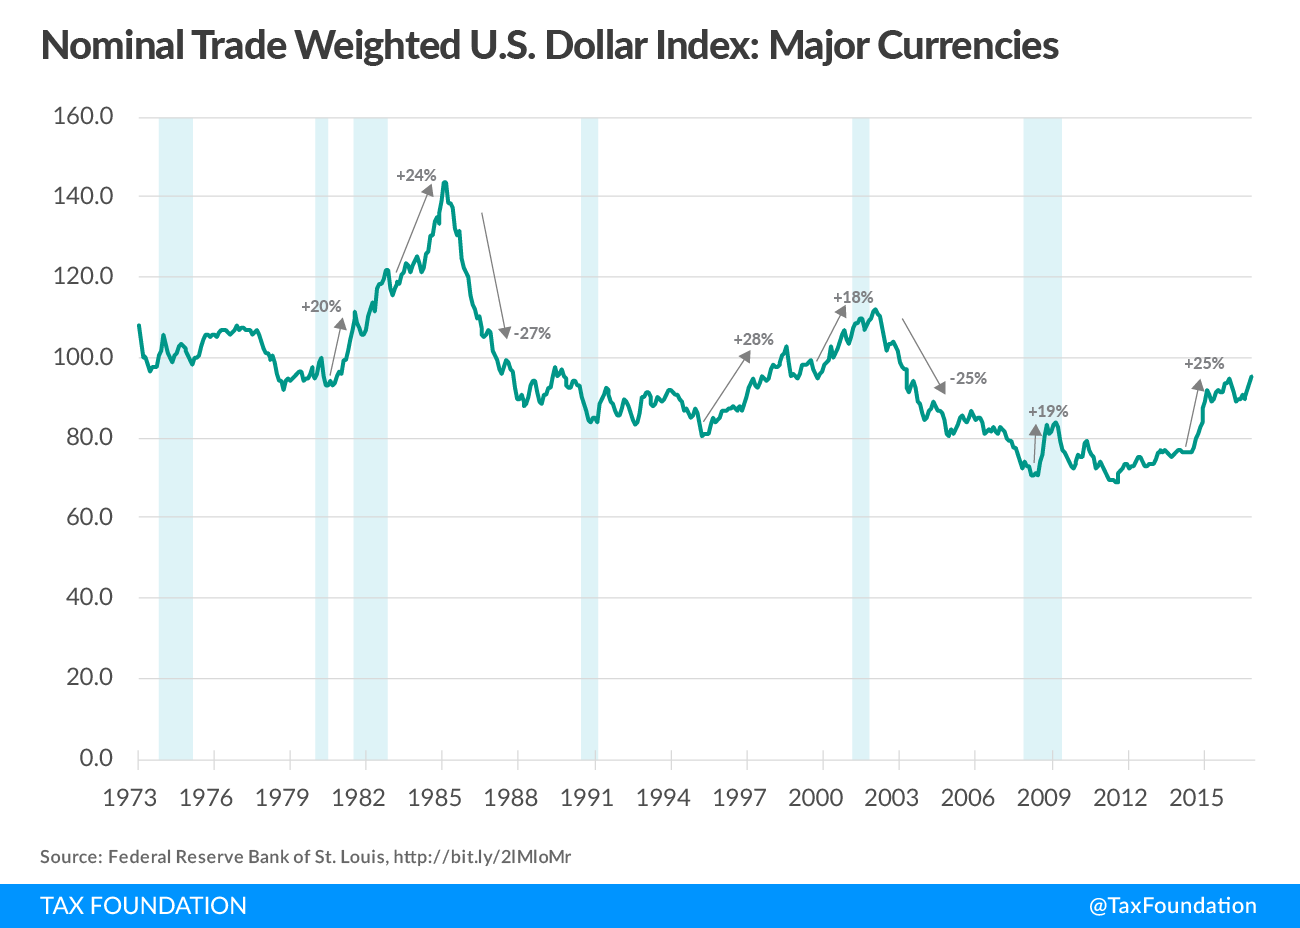 Nominal Trade Weighted U.S. Dollar Index: Major Currencies